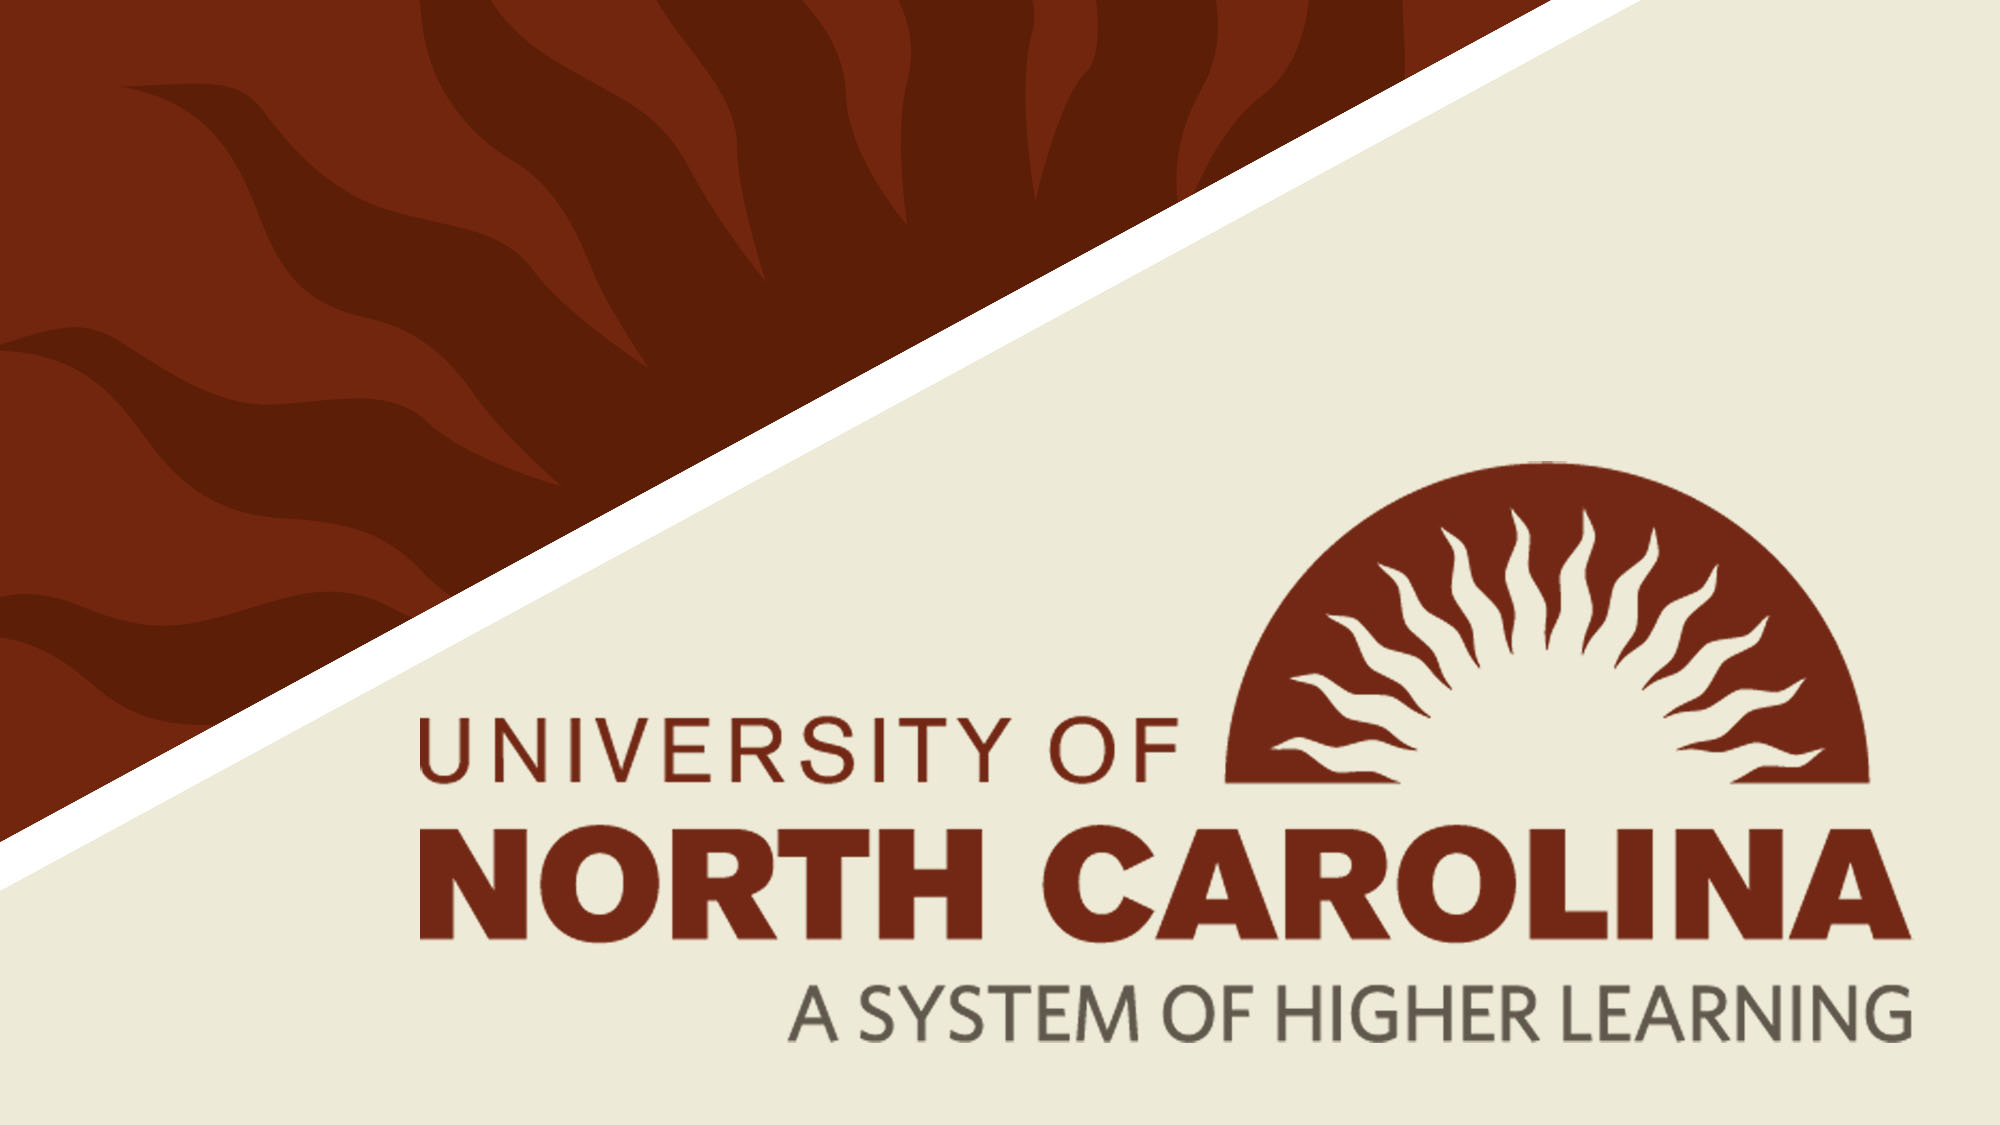 University of North Carolina - A system of Higher Learning